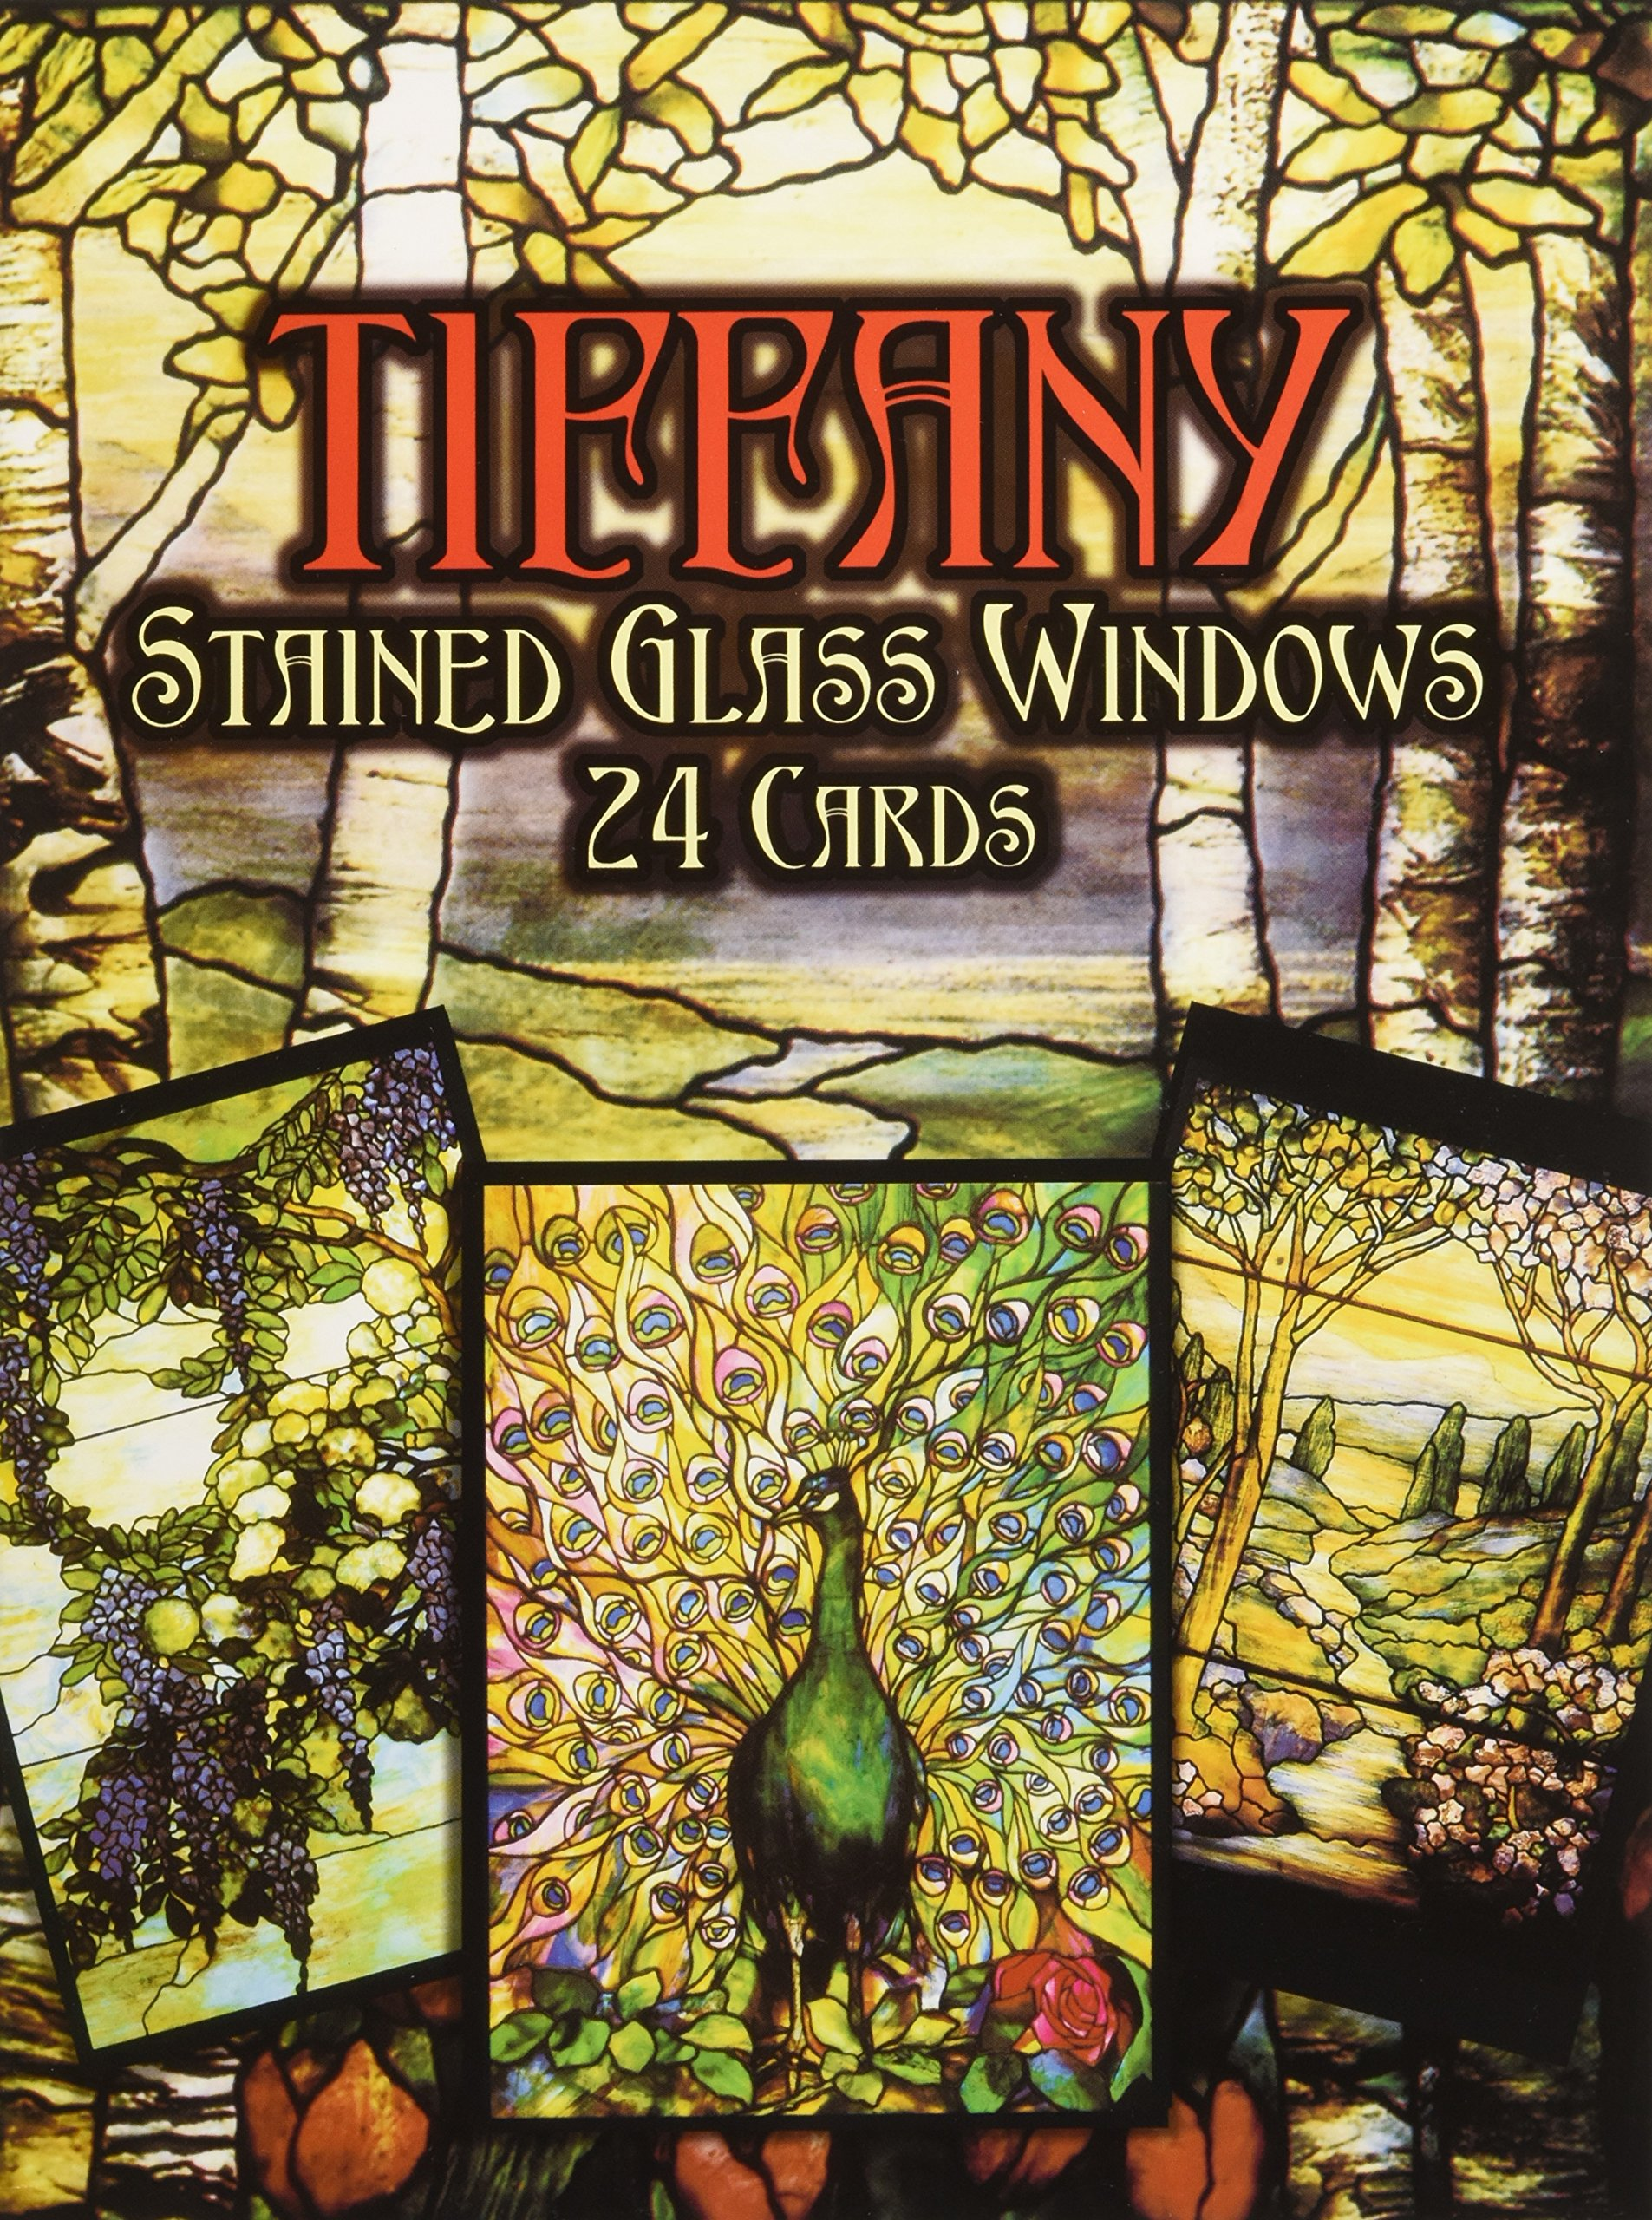 Tiffany Stained Glass Windows In Full Color Post Cards 24 Cards